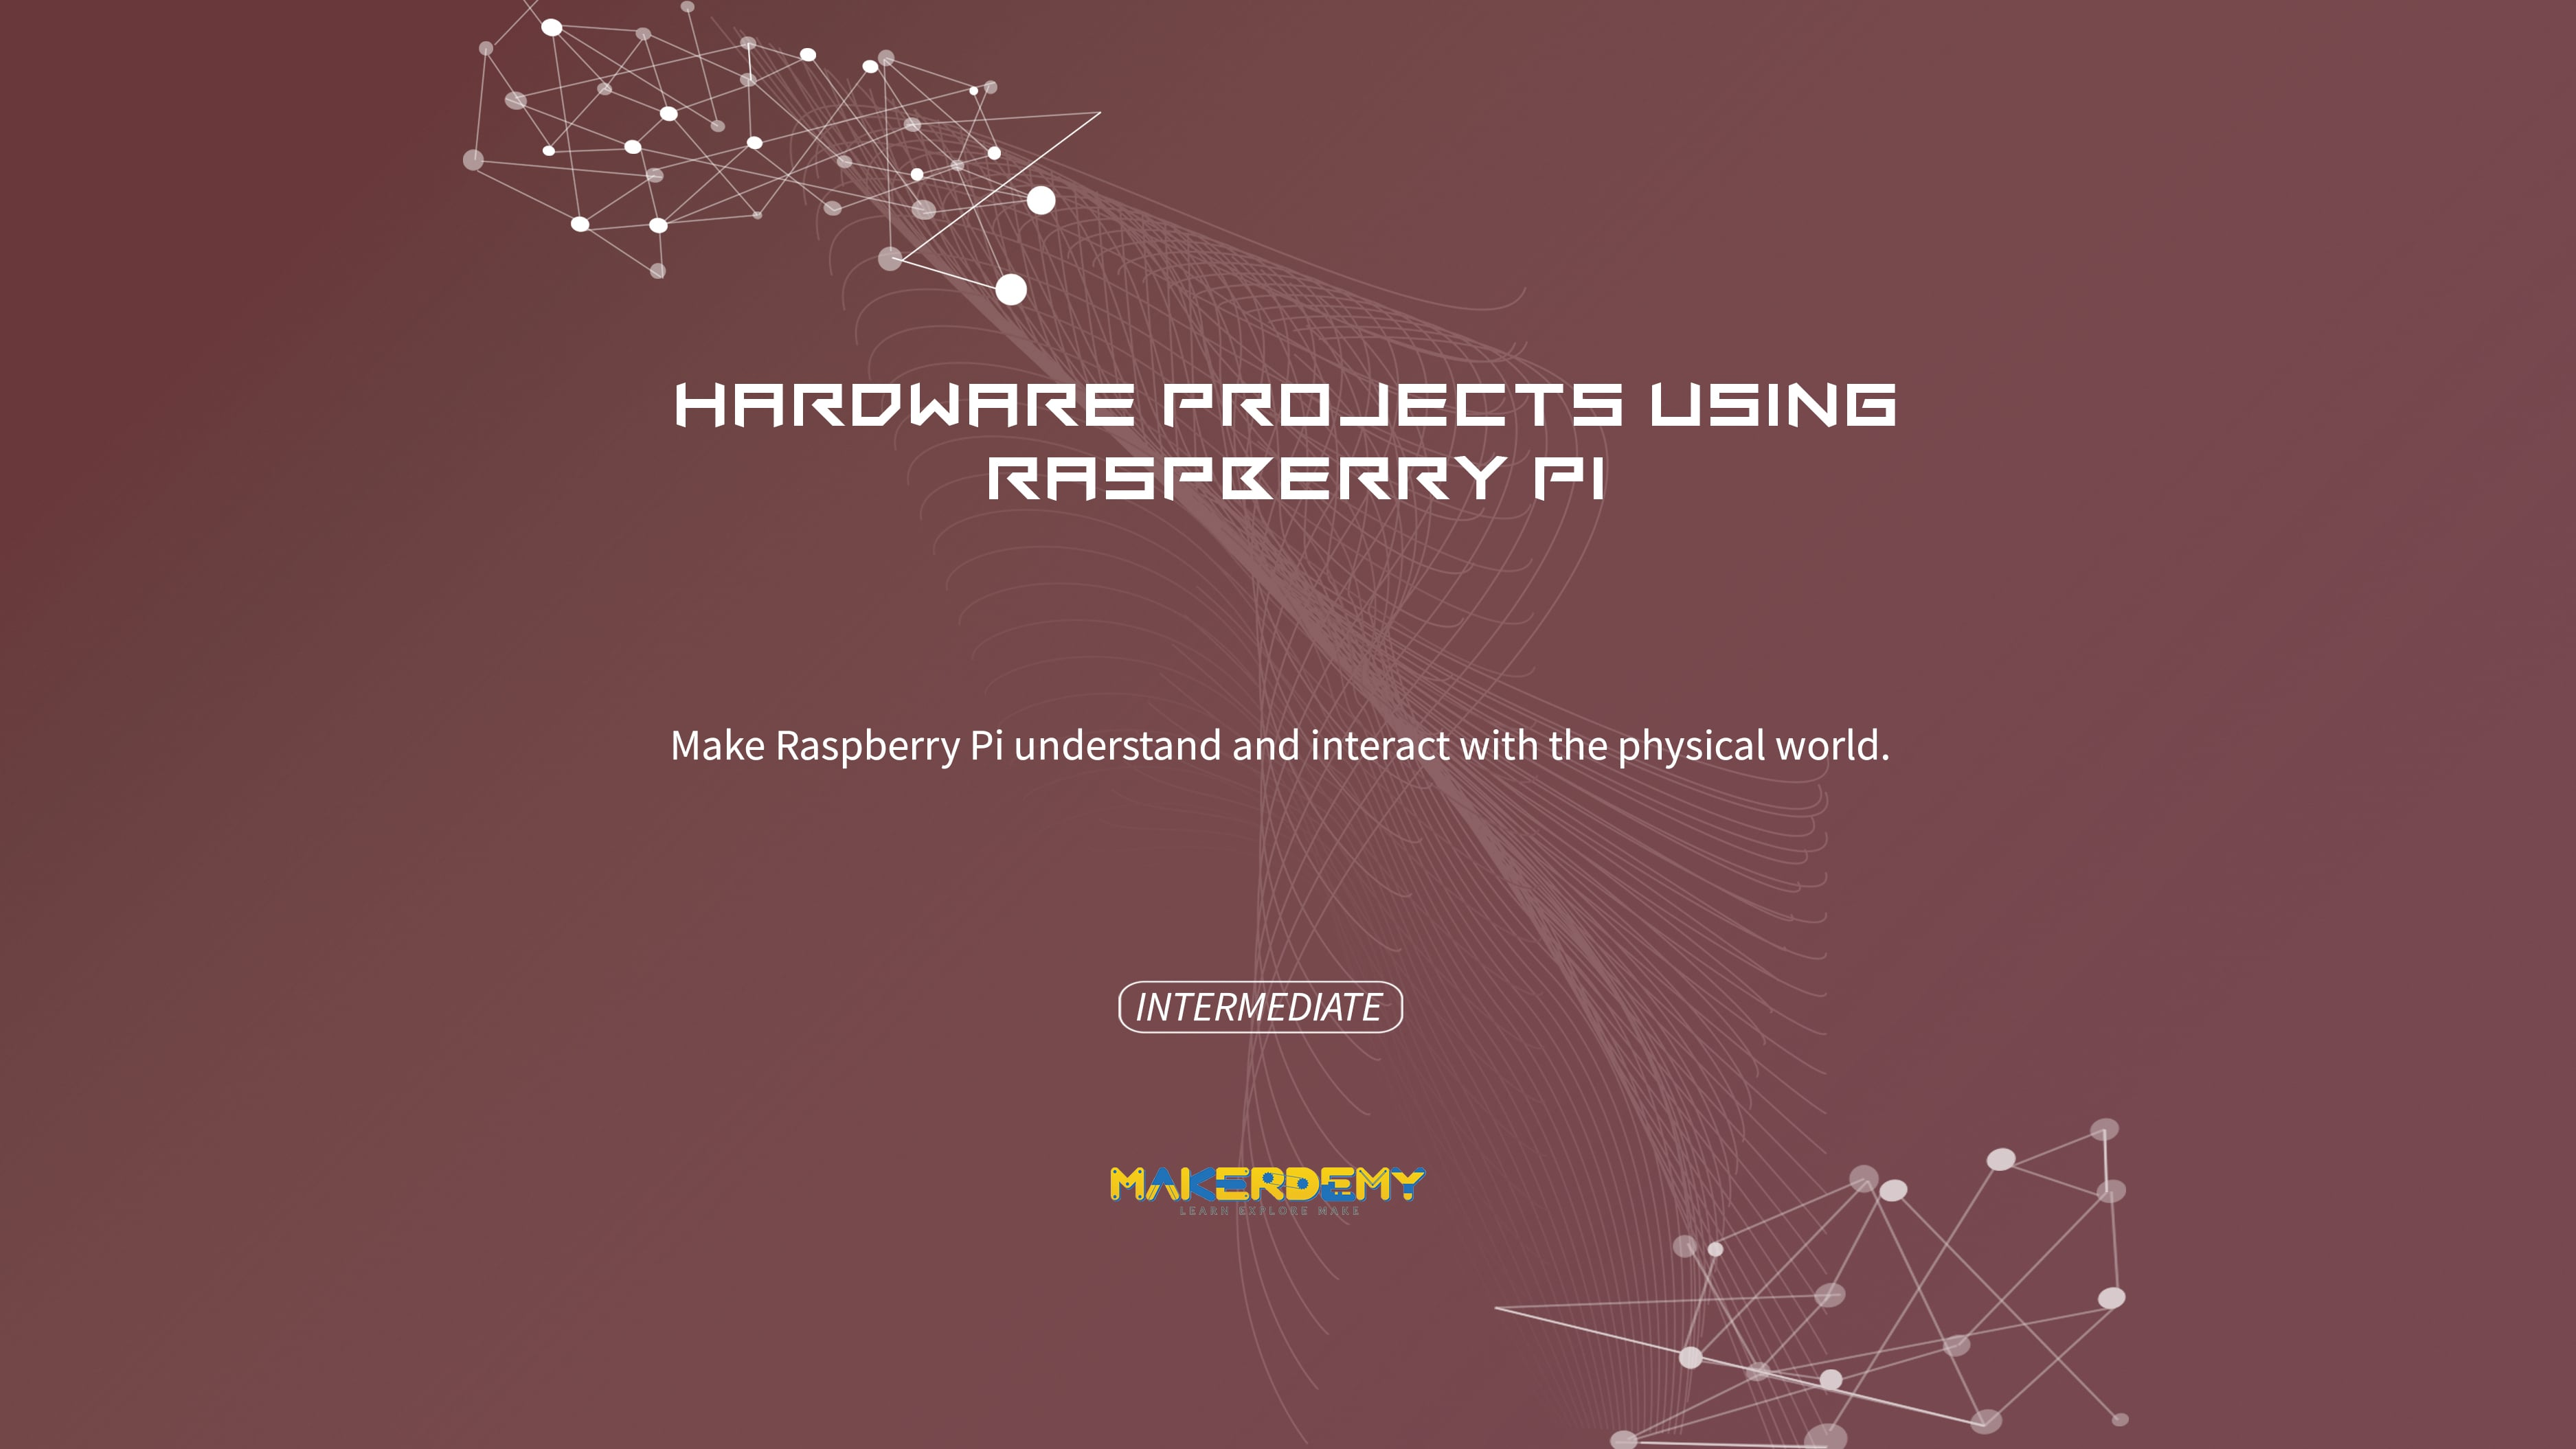 Hardware projects using Raspberry Pi